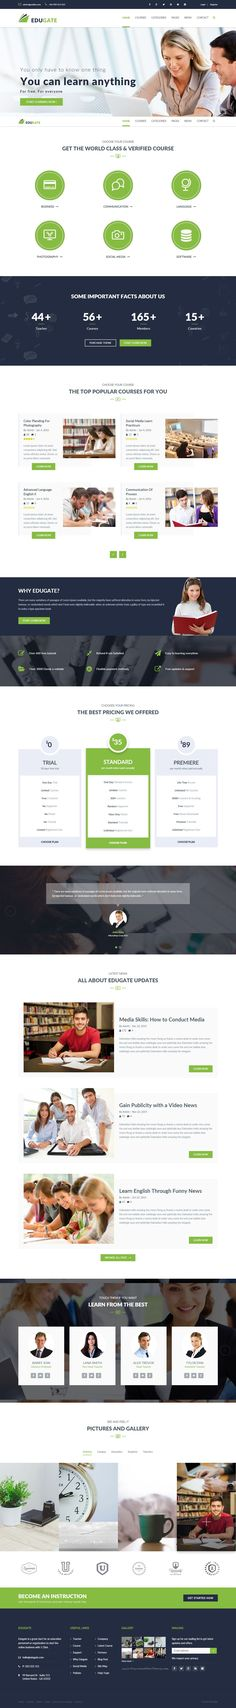 EduGate is a Modern, Creative, Responsive WordPress Theme suitable for #Educational Institutions like Universities and Colleges, Online Courses / Online Learning and Events #website.